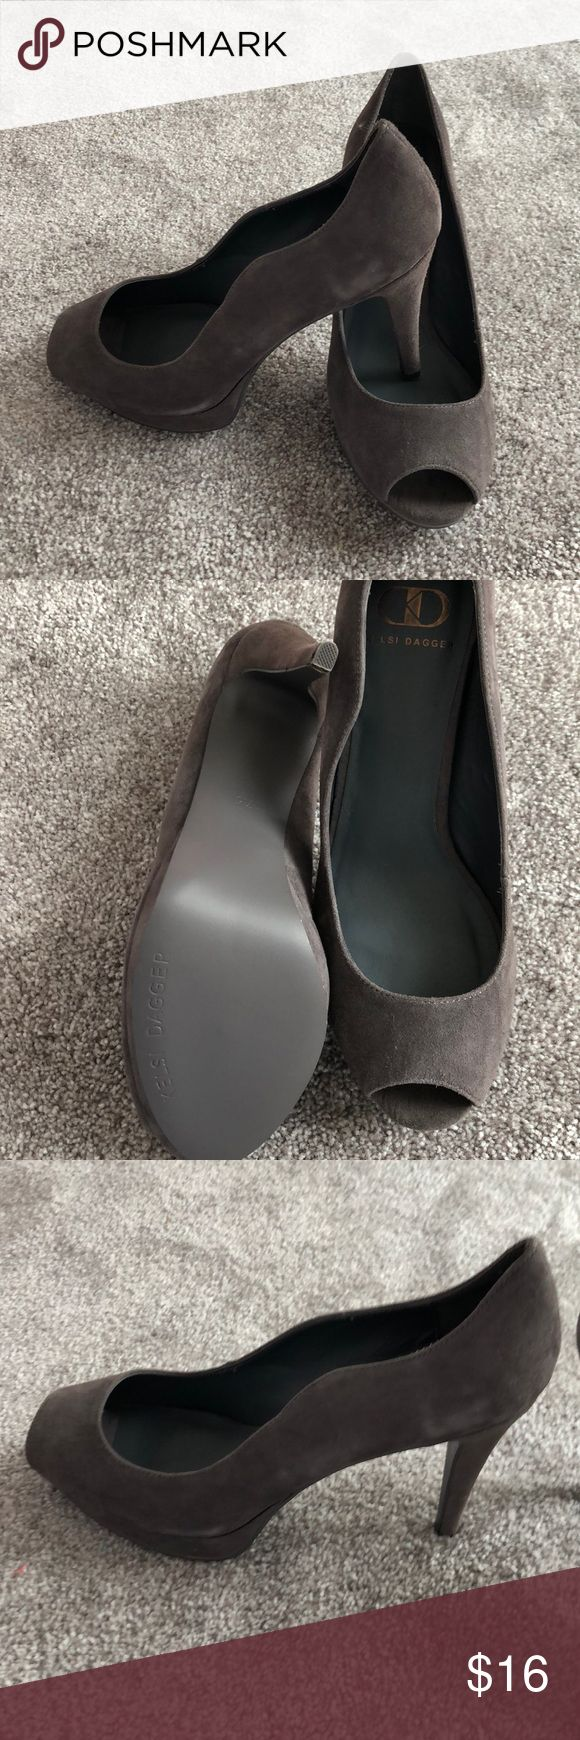 Gray kelsi dagger peep toe heels Gray Kelsi Dagger heels. New without tags. Never worn. 3.75inch heels. Suede material with scalloped edges toward back of heels. Size 7.5. Kelsi Dagger Shoes Heels